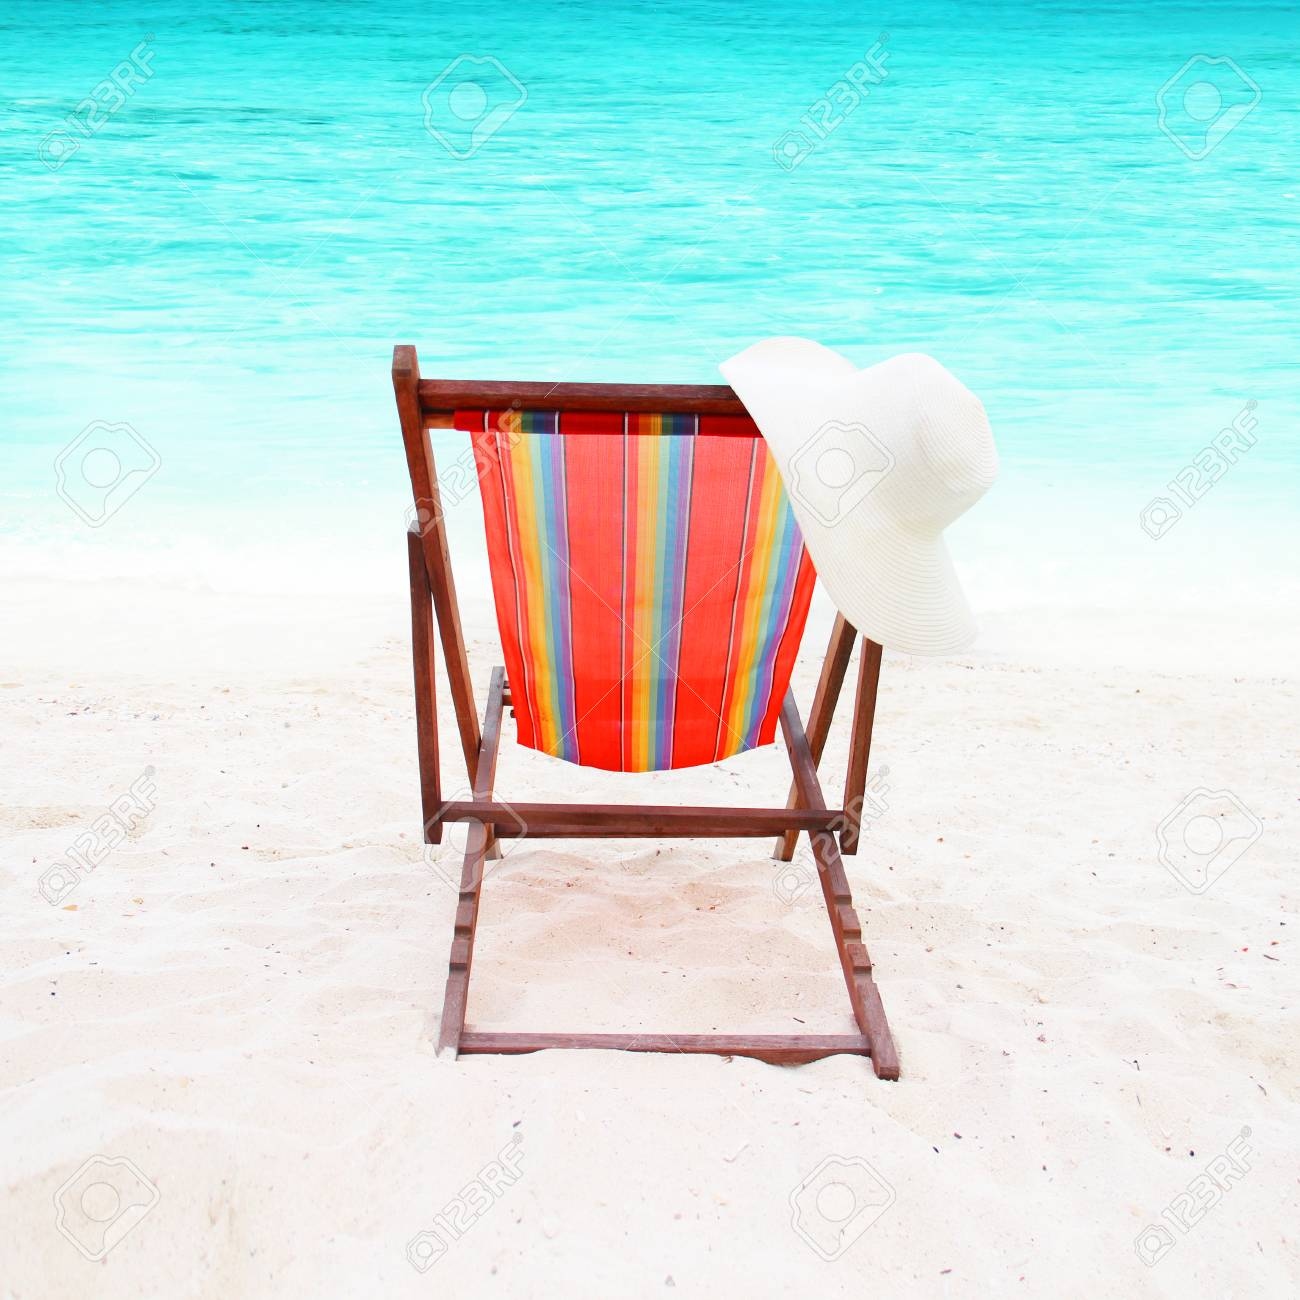 banque dimages chaise colore sur le sable blanc sur une belle plage - Chaise Coloree